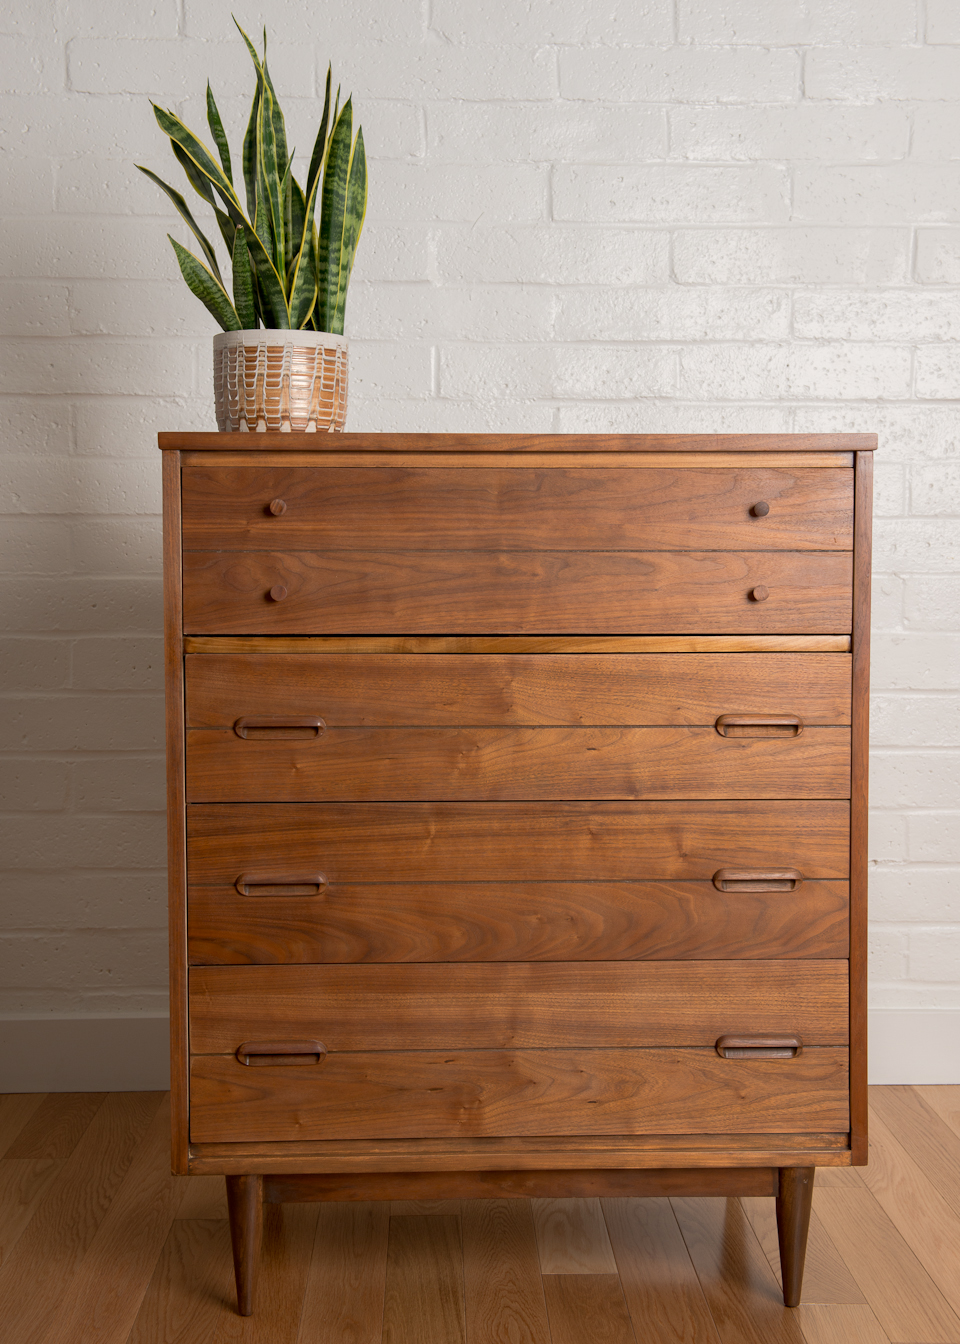 Mid Century Dresser with flower vase above with brick wall and wooden floor